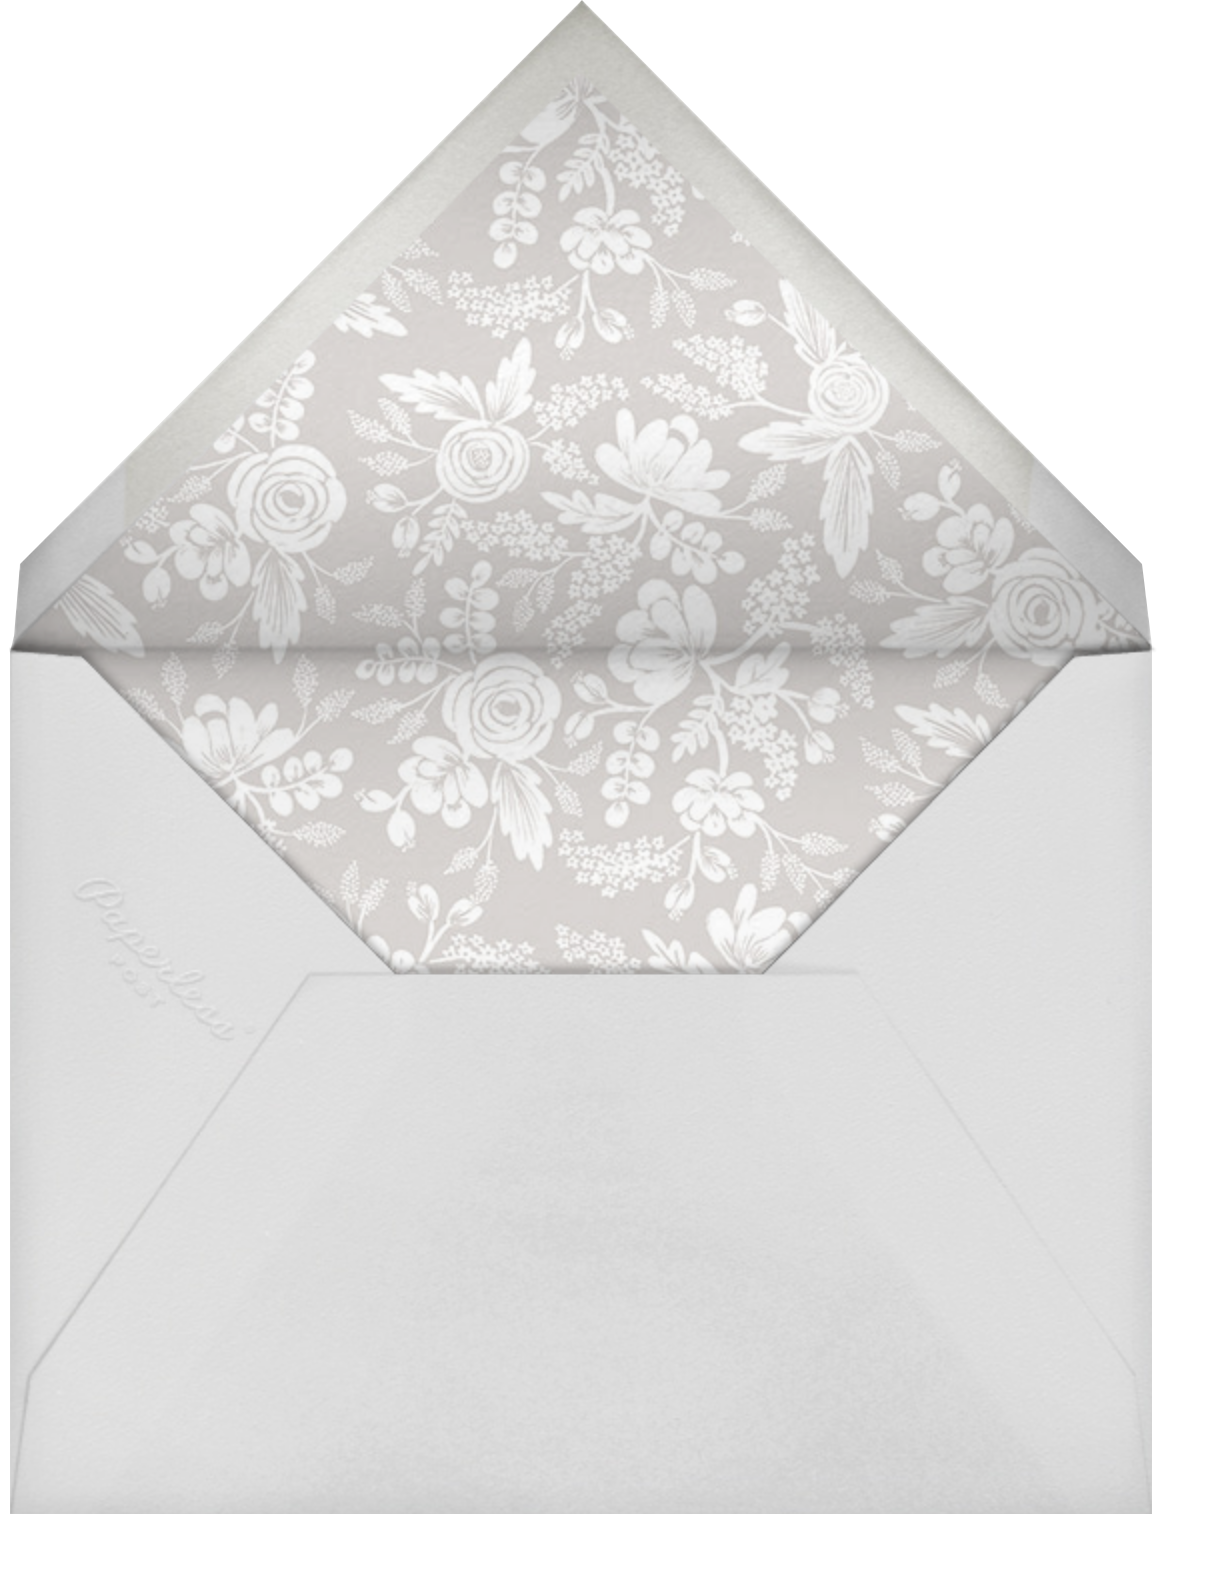 Heather and Lace (Tall Frame) - Gold/Gray - Rifle Paper Co. - Envelope